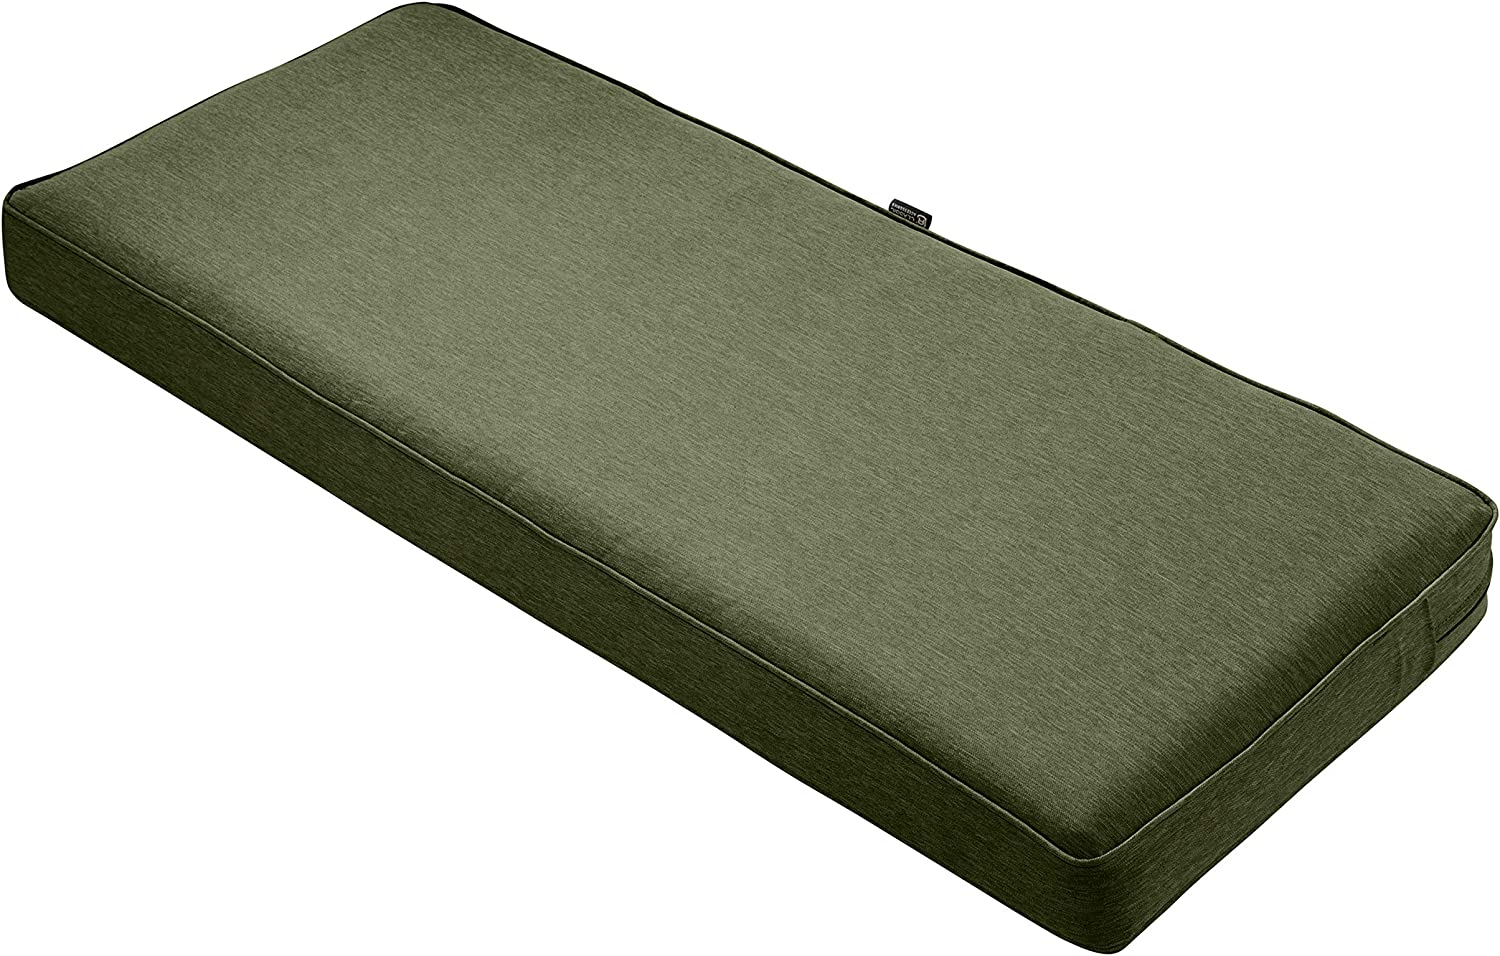 Classic Accessories Montlake Water-Resistant 59 x 18 x 3 Inch Patio Bench/Settee Cushion, Heather Fern Green